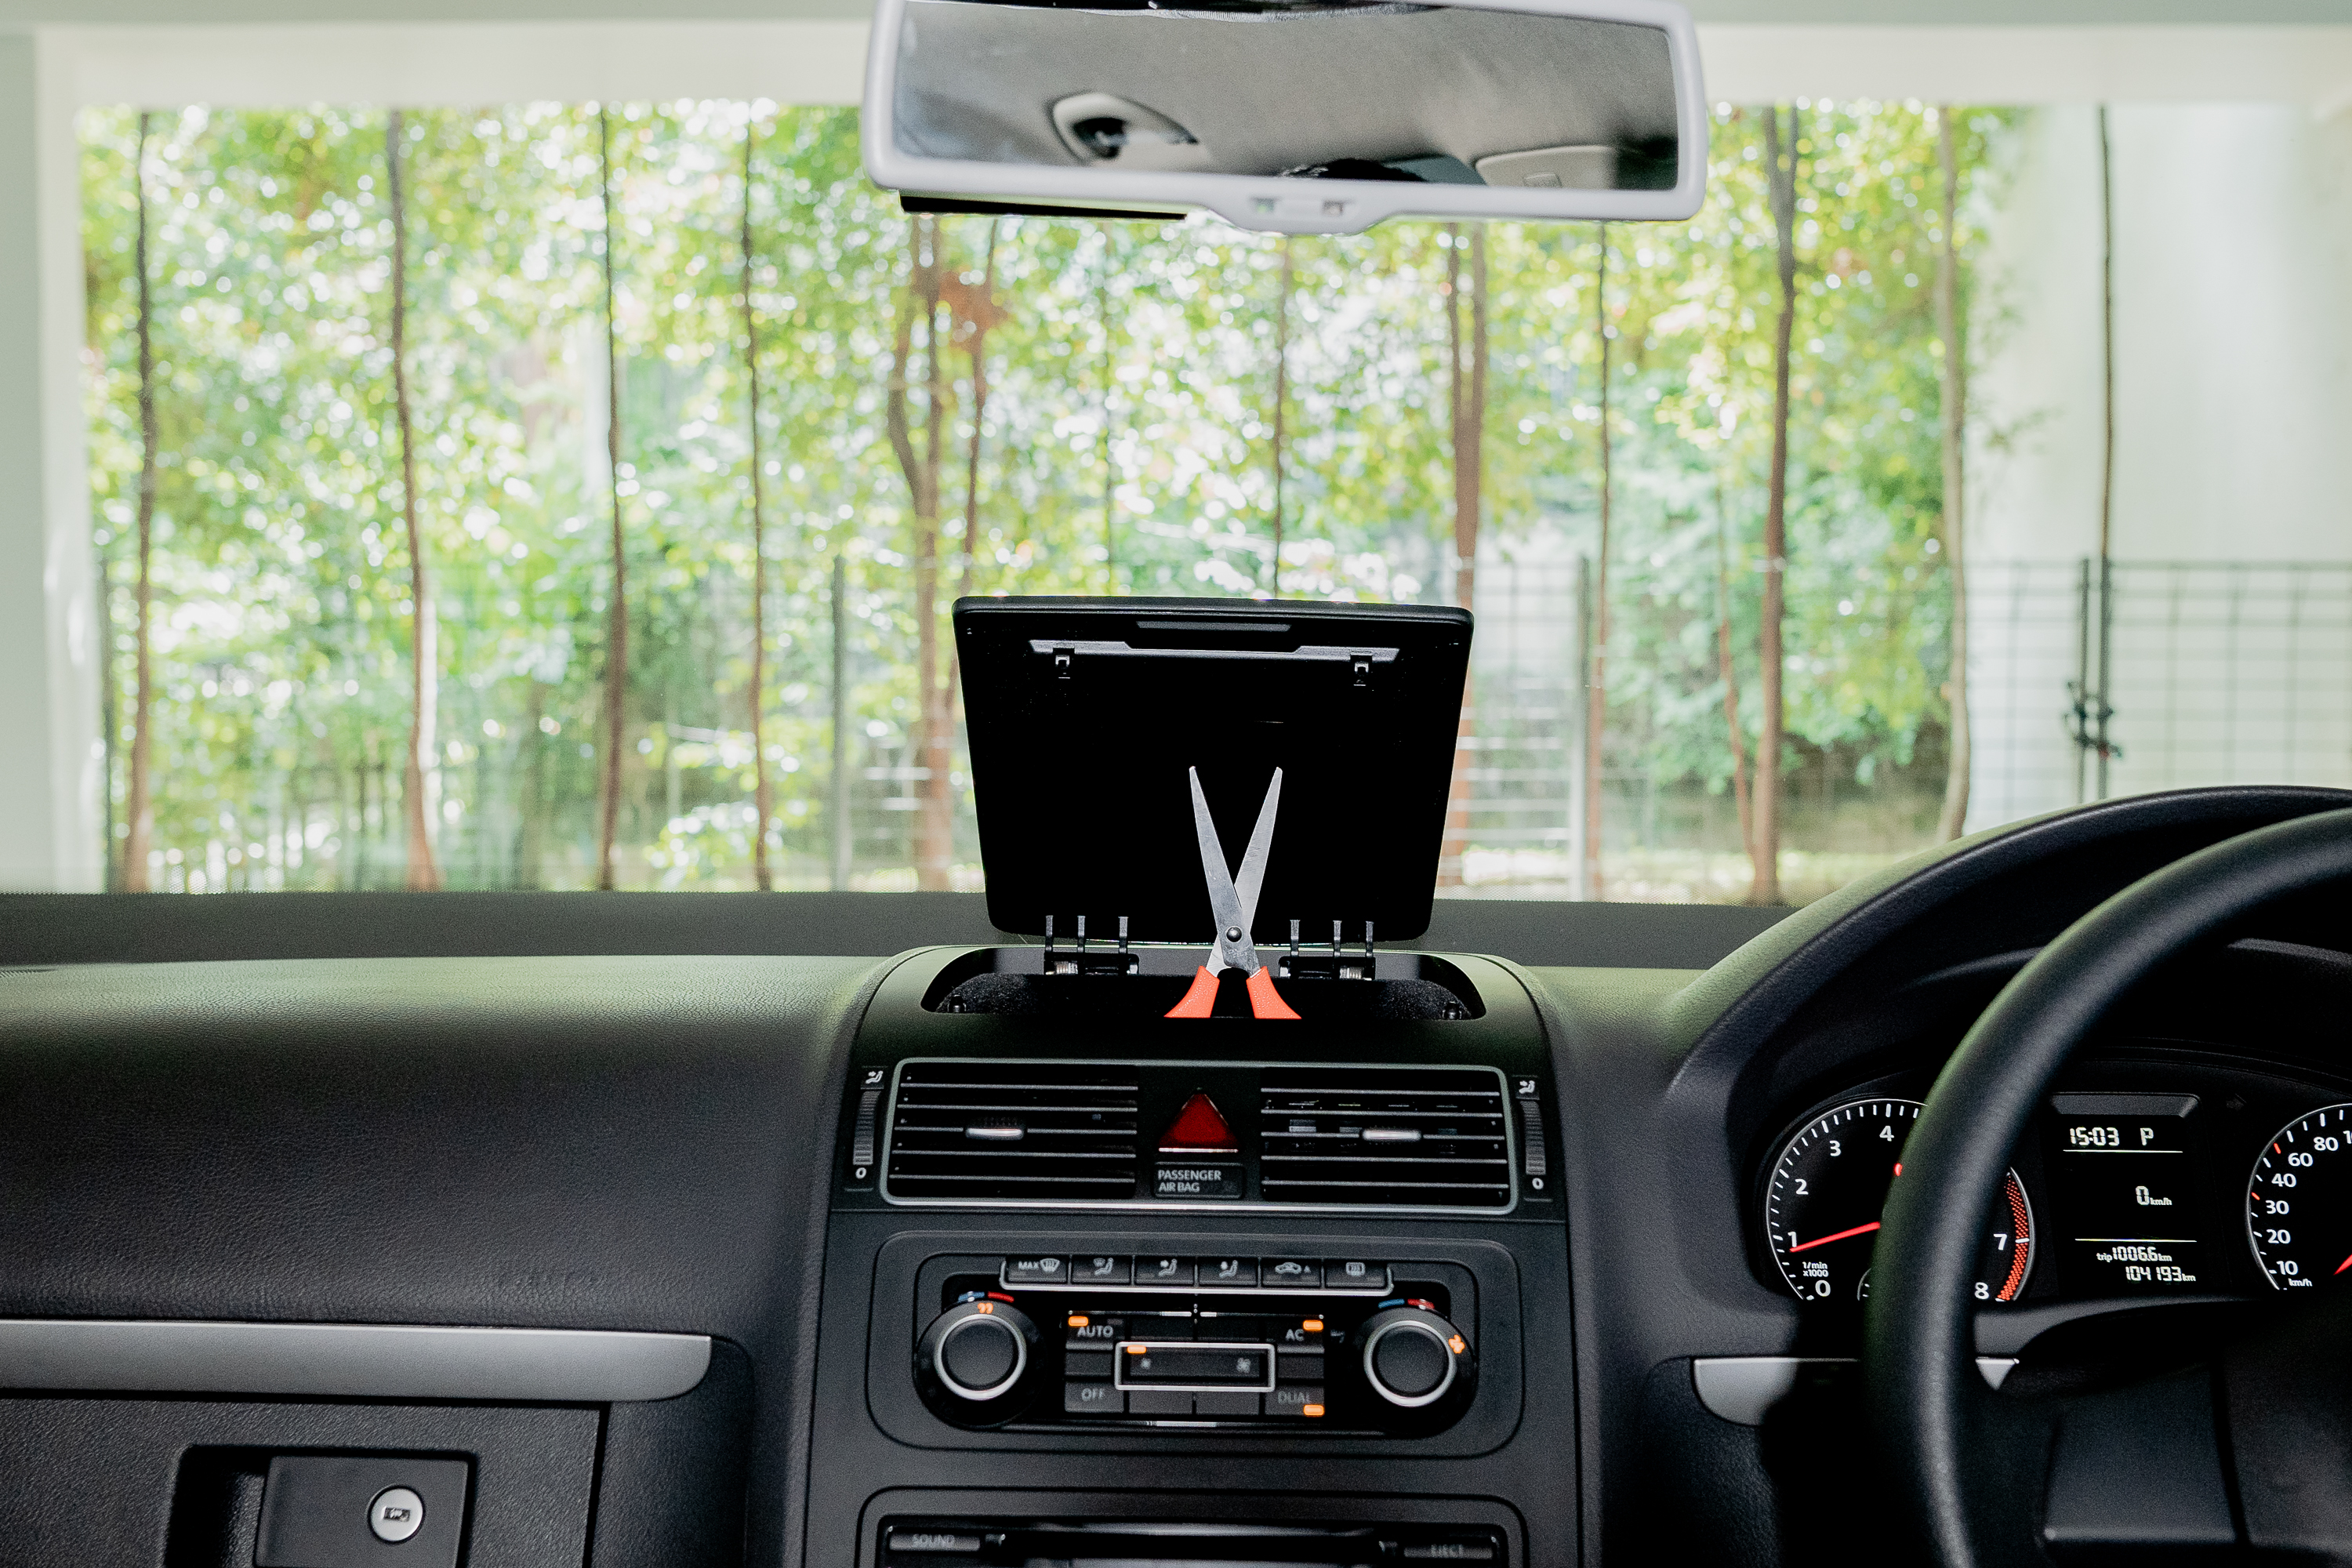 Scissor on the dashboard of your car